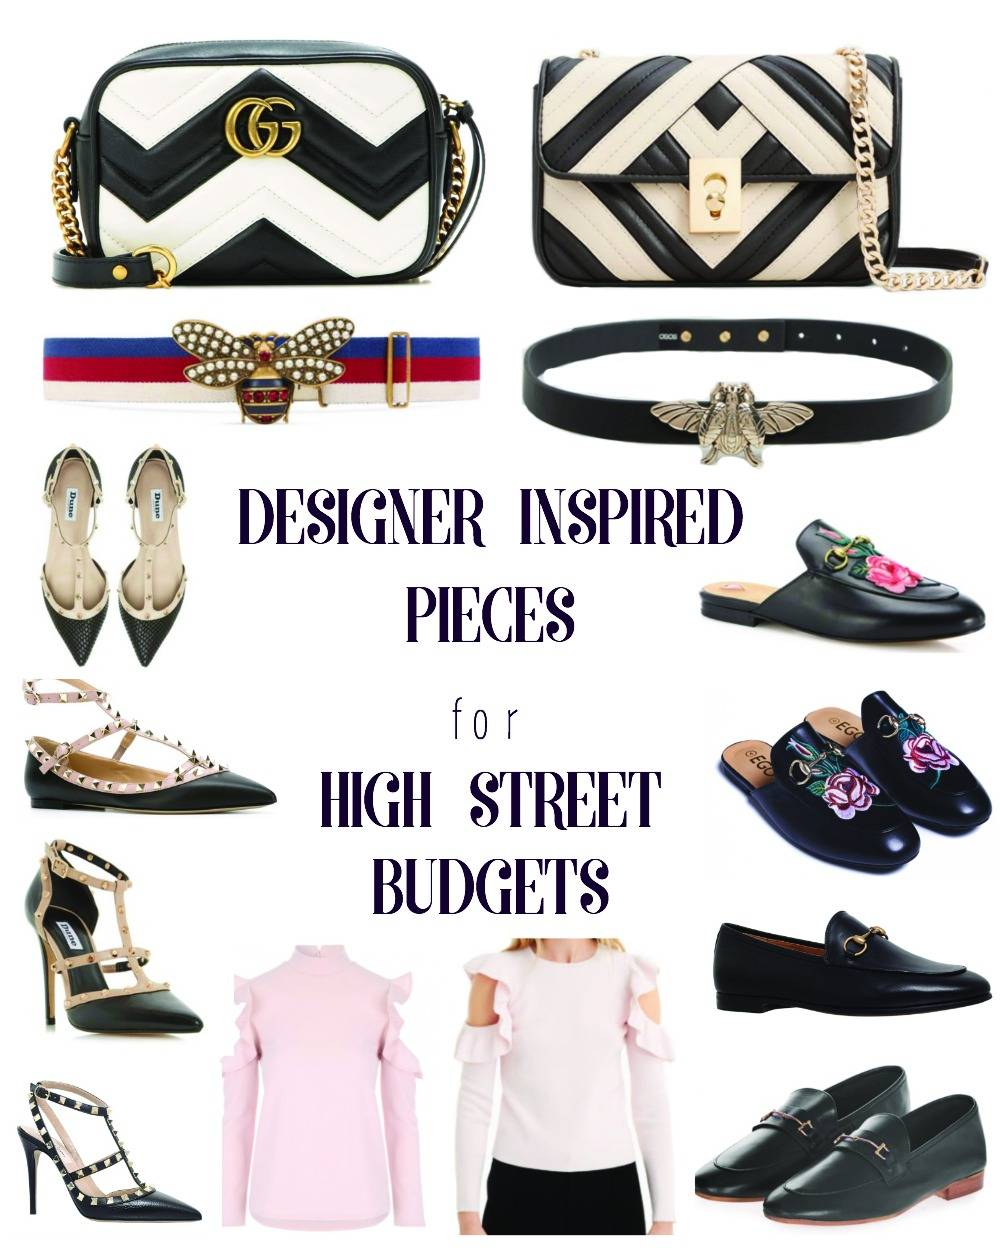 Designer Inspired Pieces